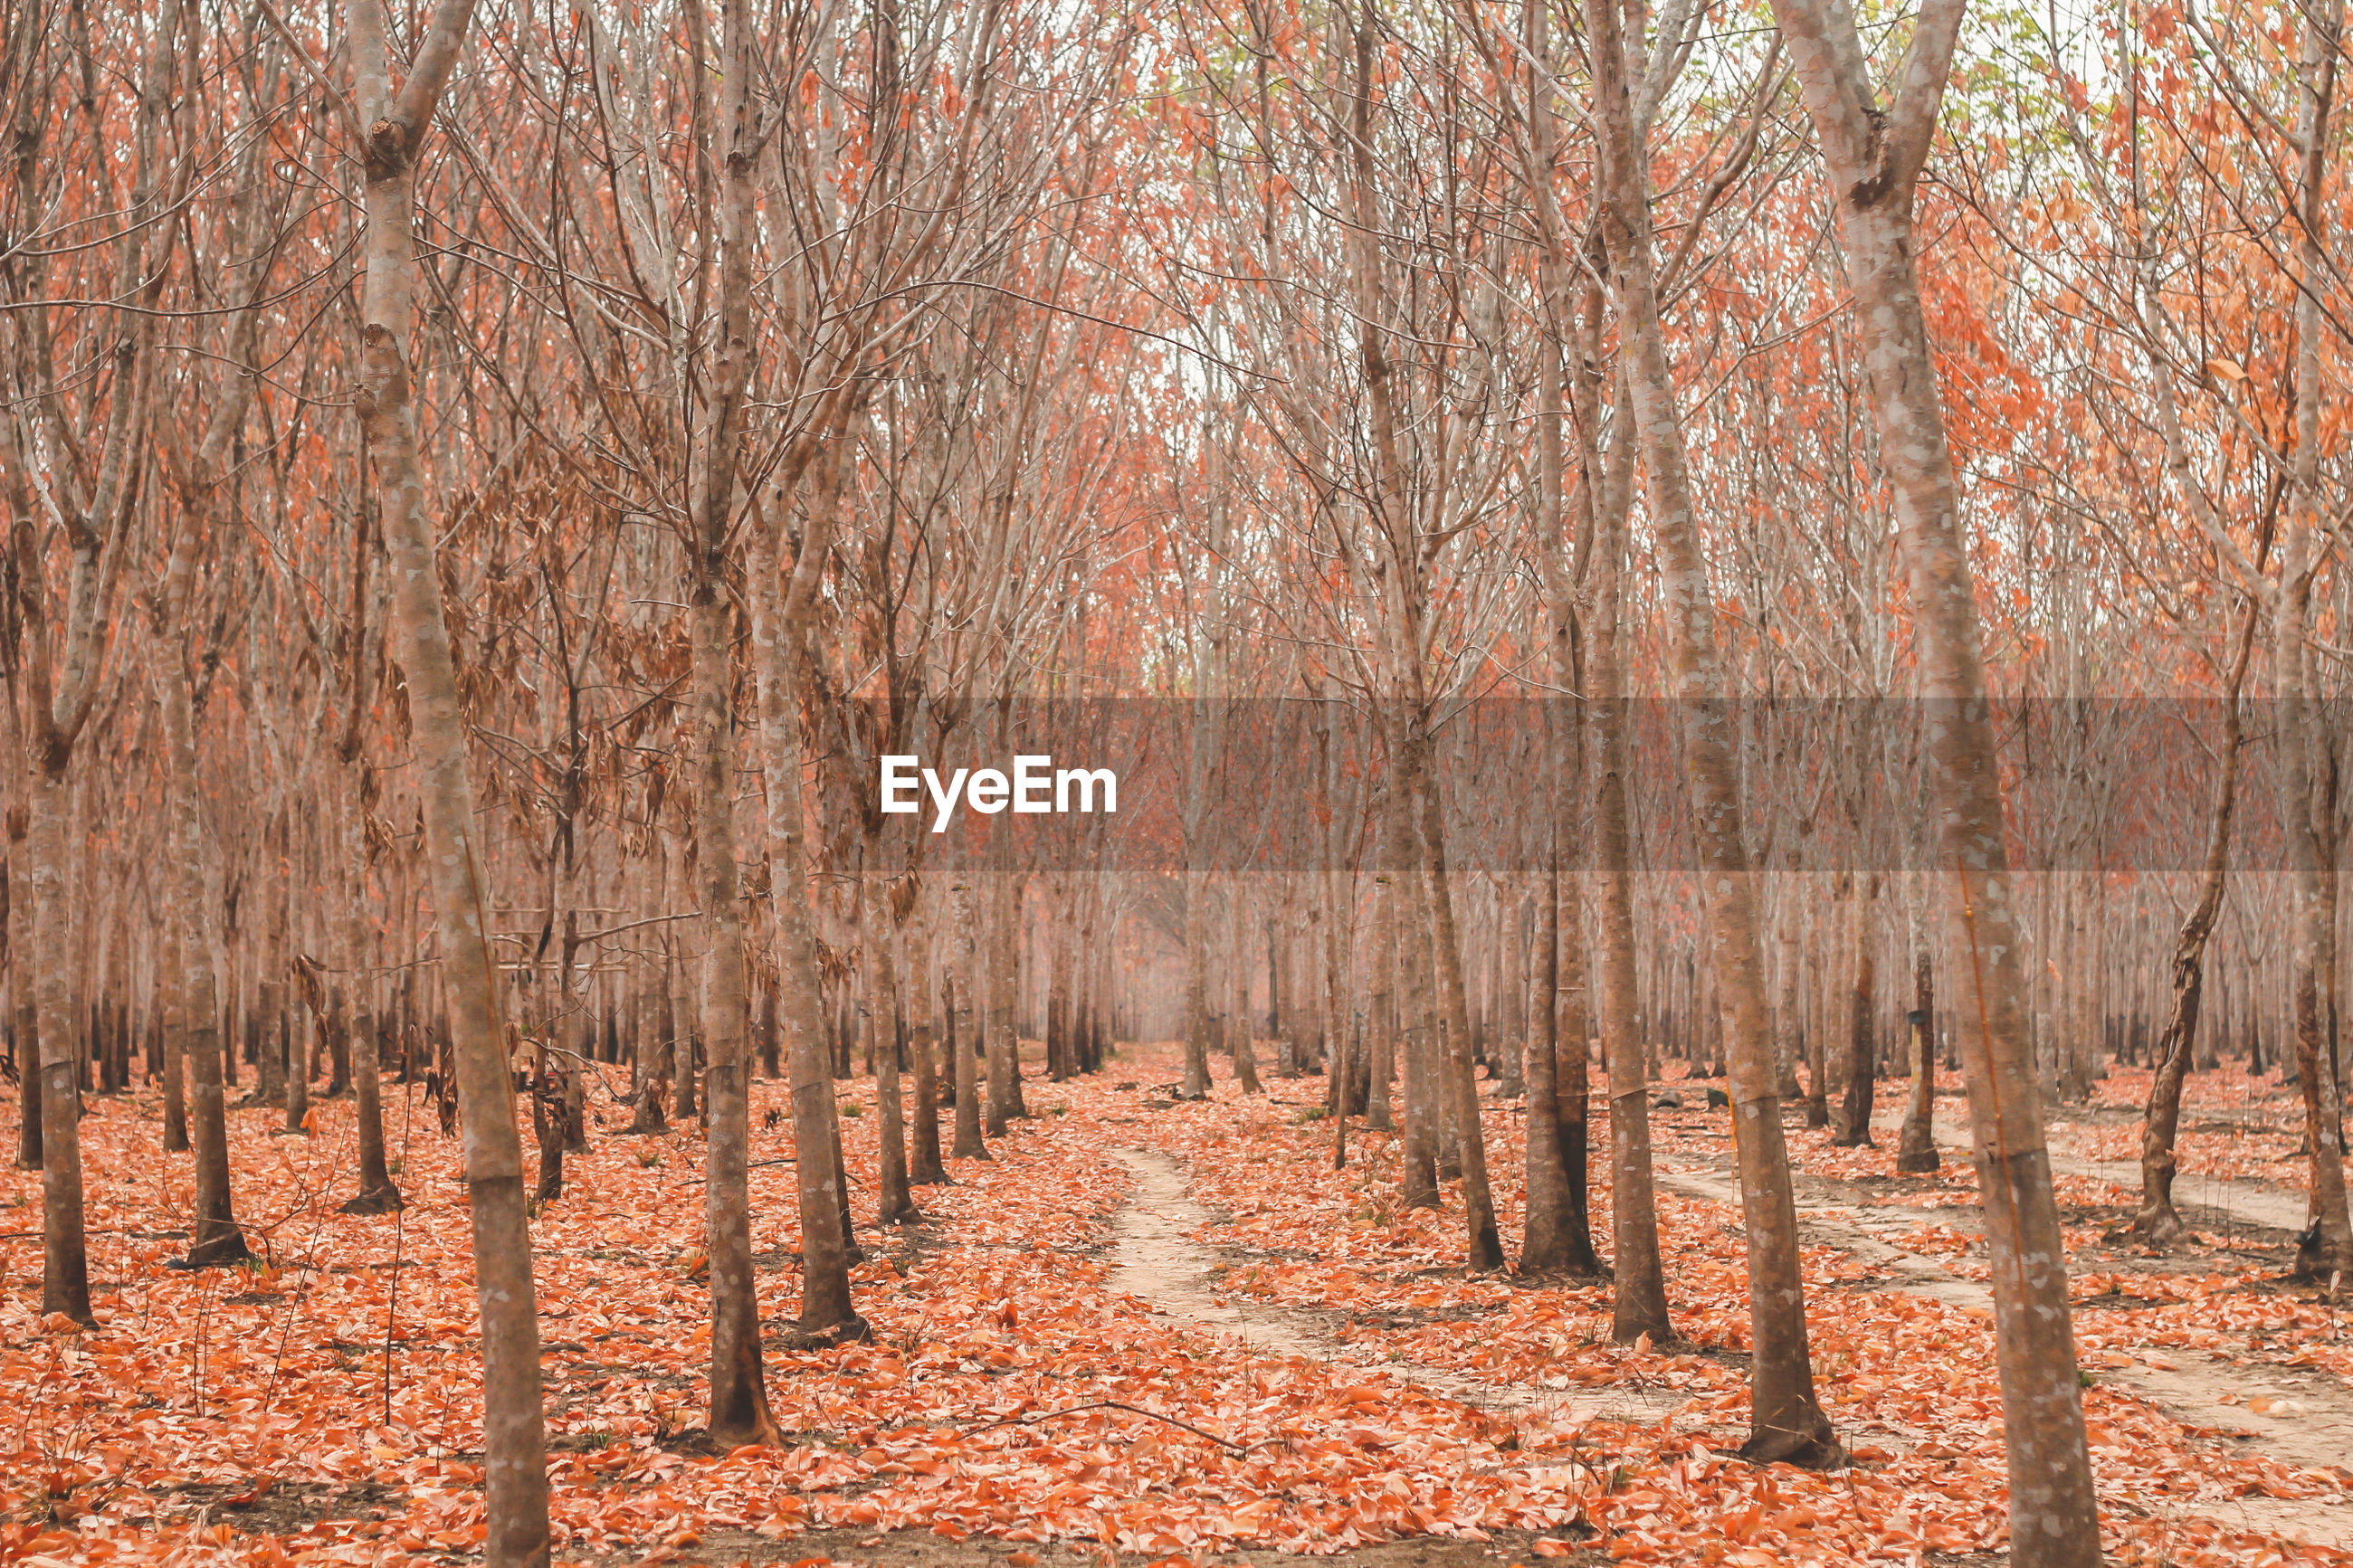 PANORAMIC SHOT OF TREES IN FOREST DURING AUTUMN